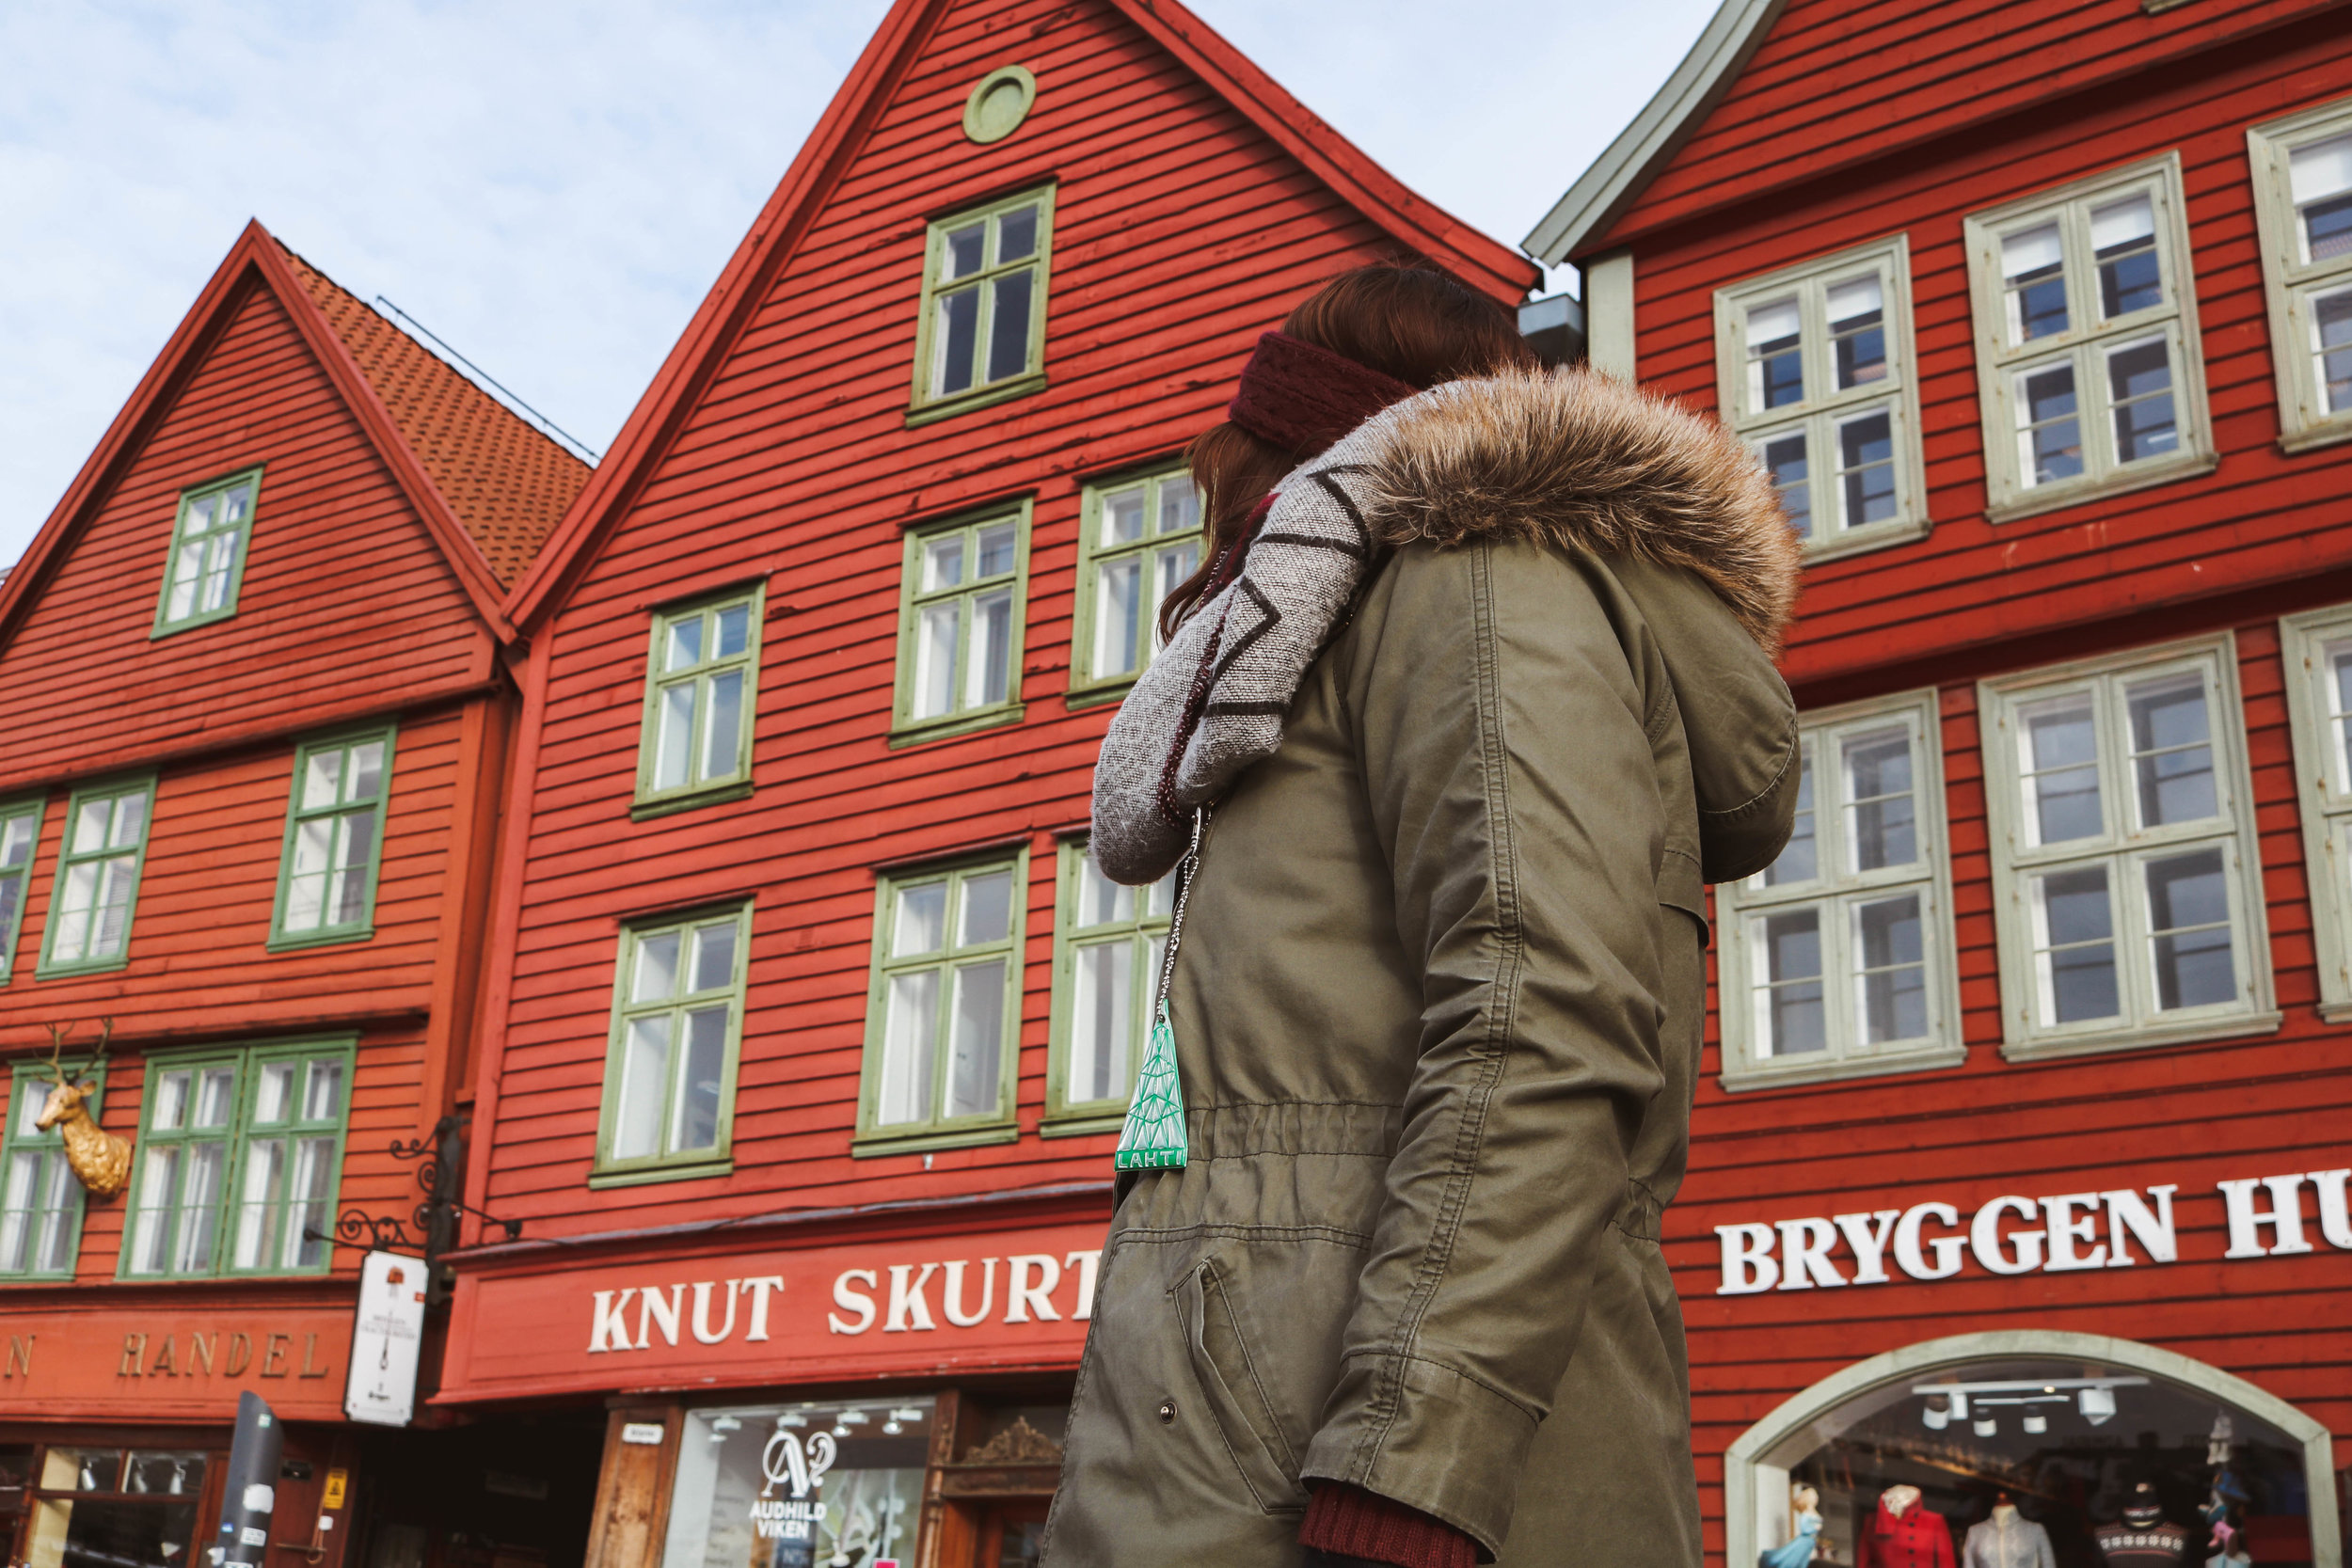 My H&M parka was absolutely sufficient to explore Bergen in February…